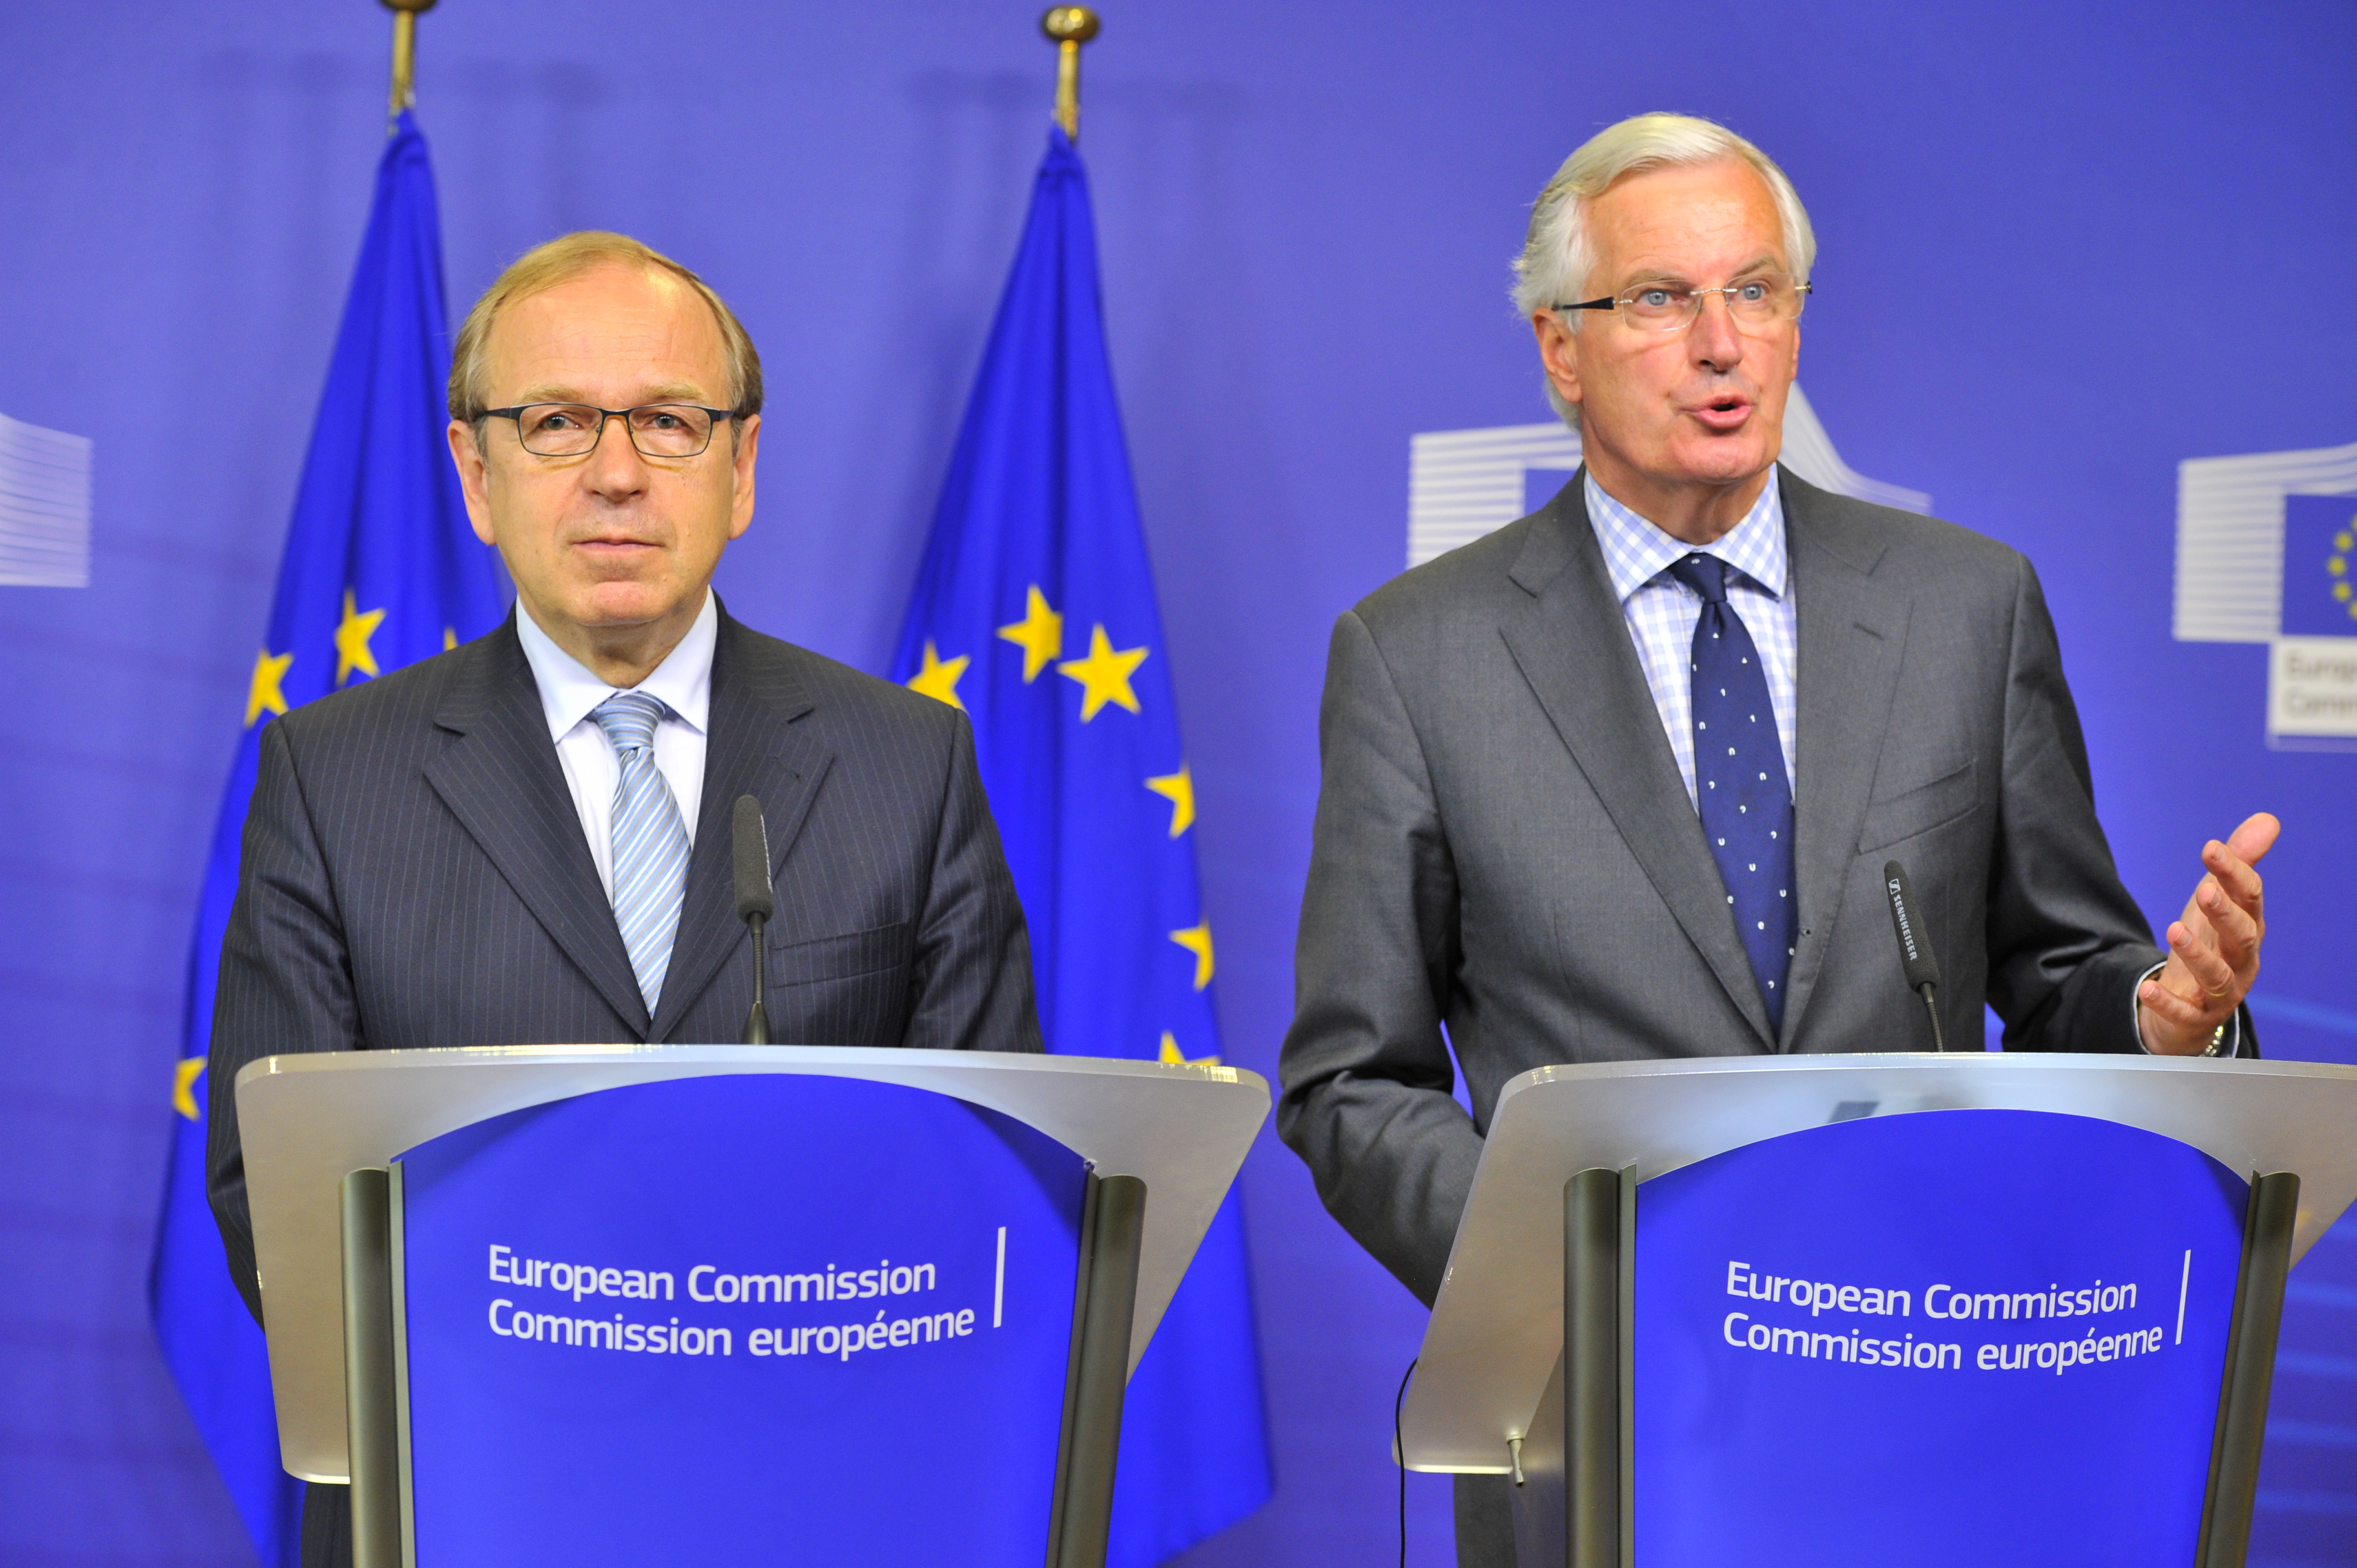 EU Commissioner for Internal Market and Services Michel Barnier (R) and the governor of the Bank of Finland, Erkki Liikanen, at a press conference in Brussels, Oct. 2, 2012. (GEORGES GOBET/AFP/GettyImages)